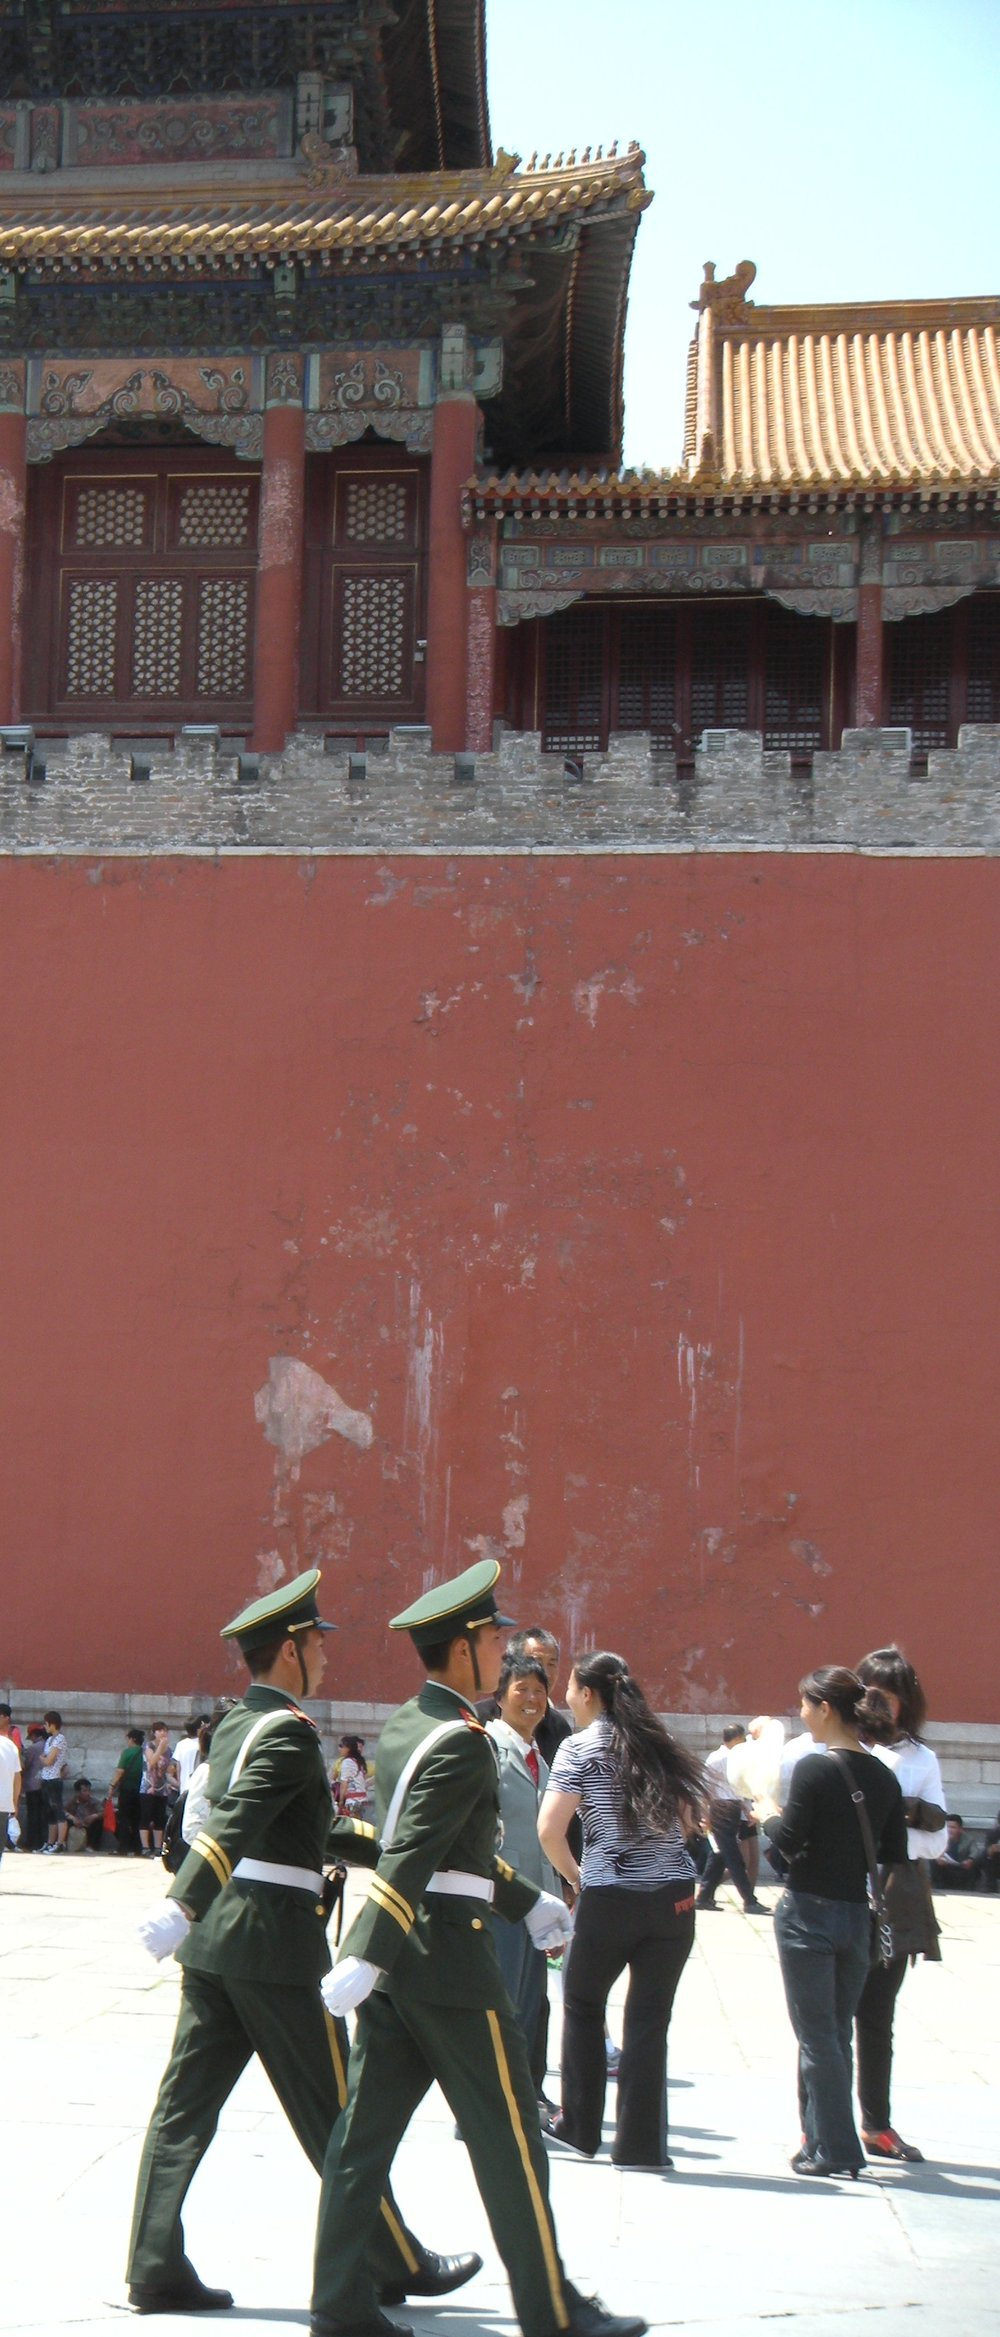 We're guards. Outside the Forbidden City